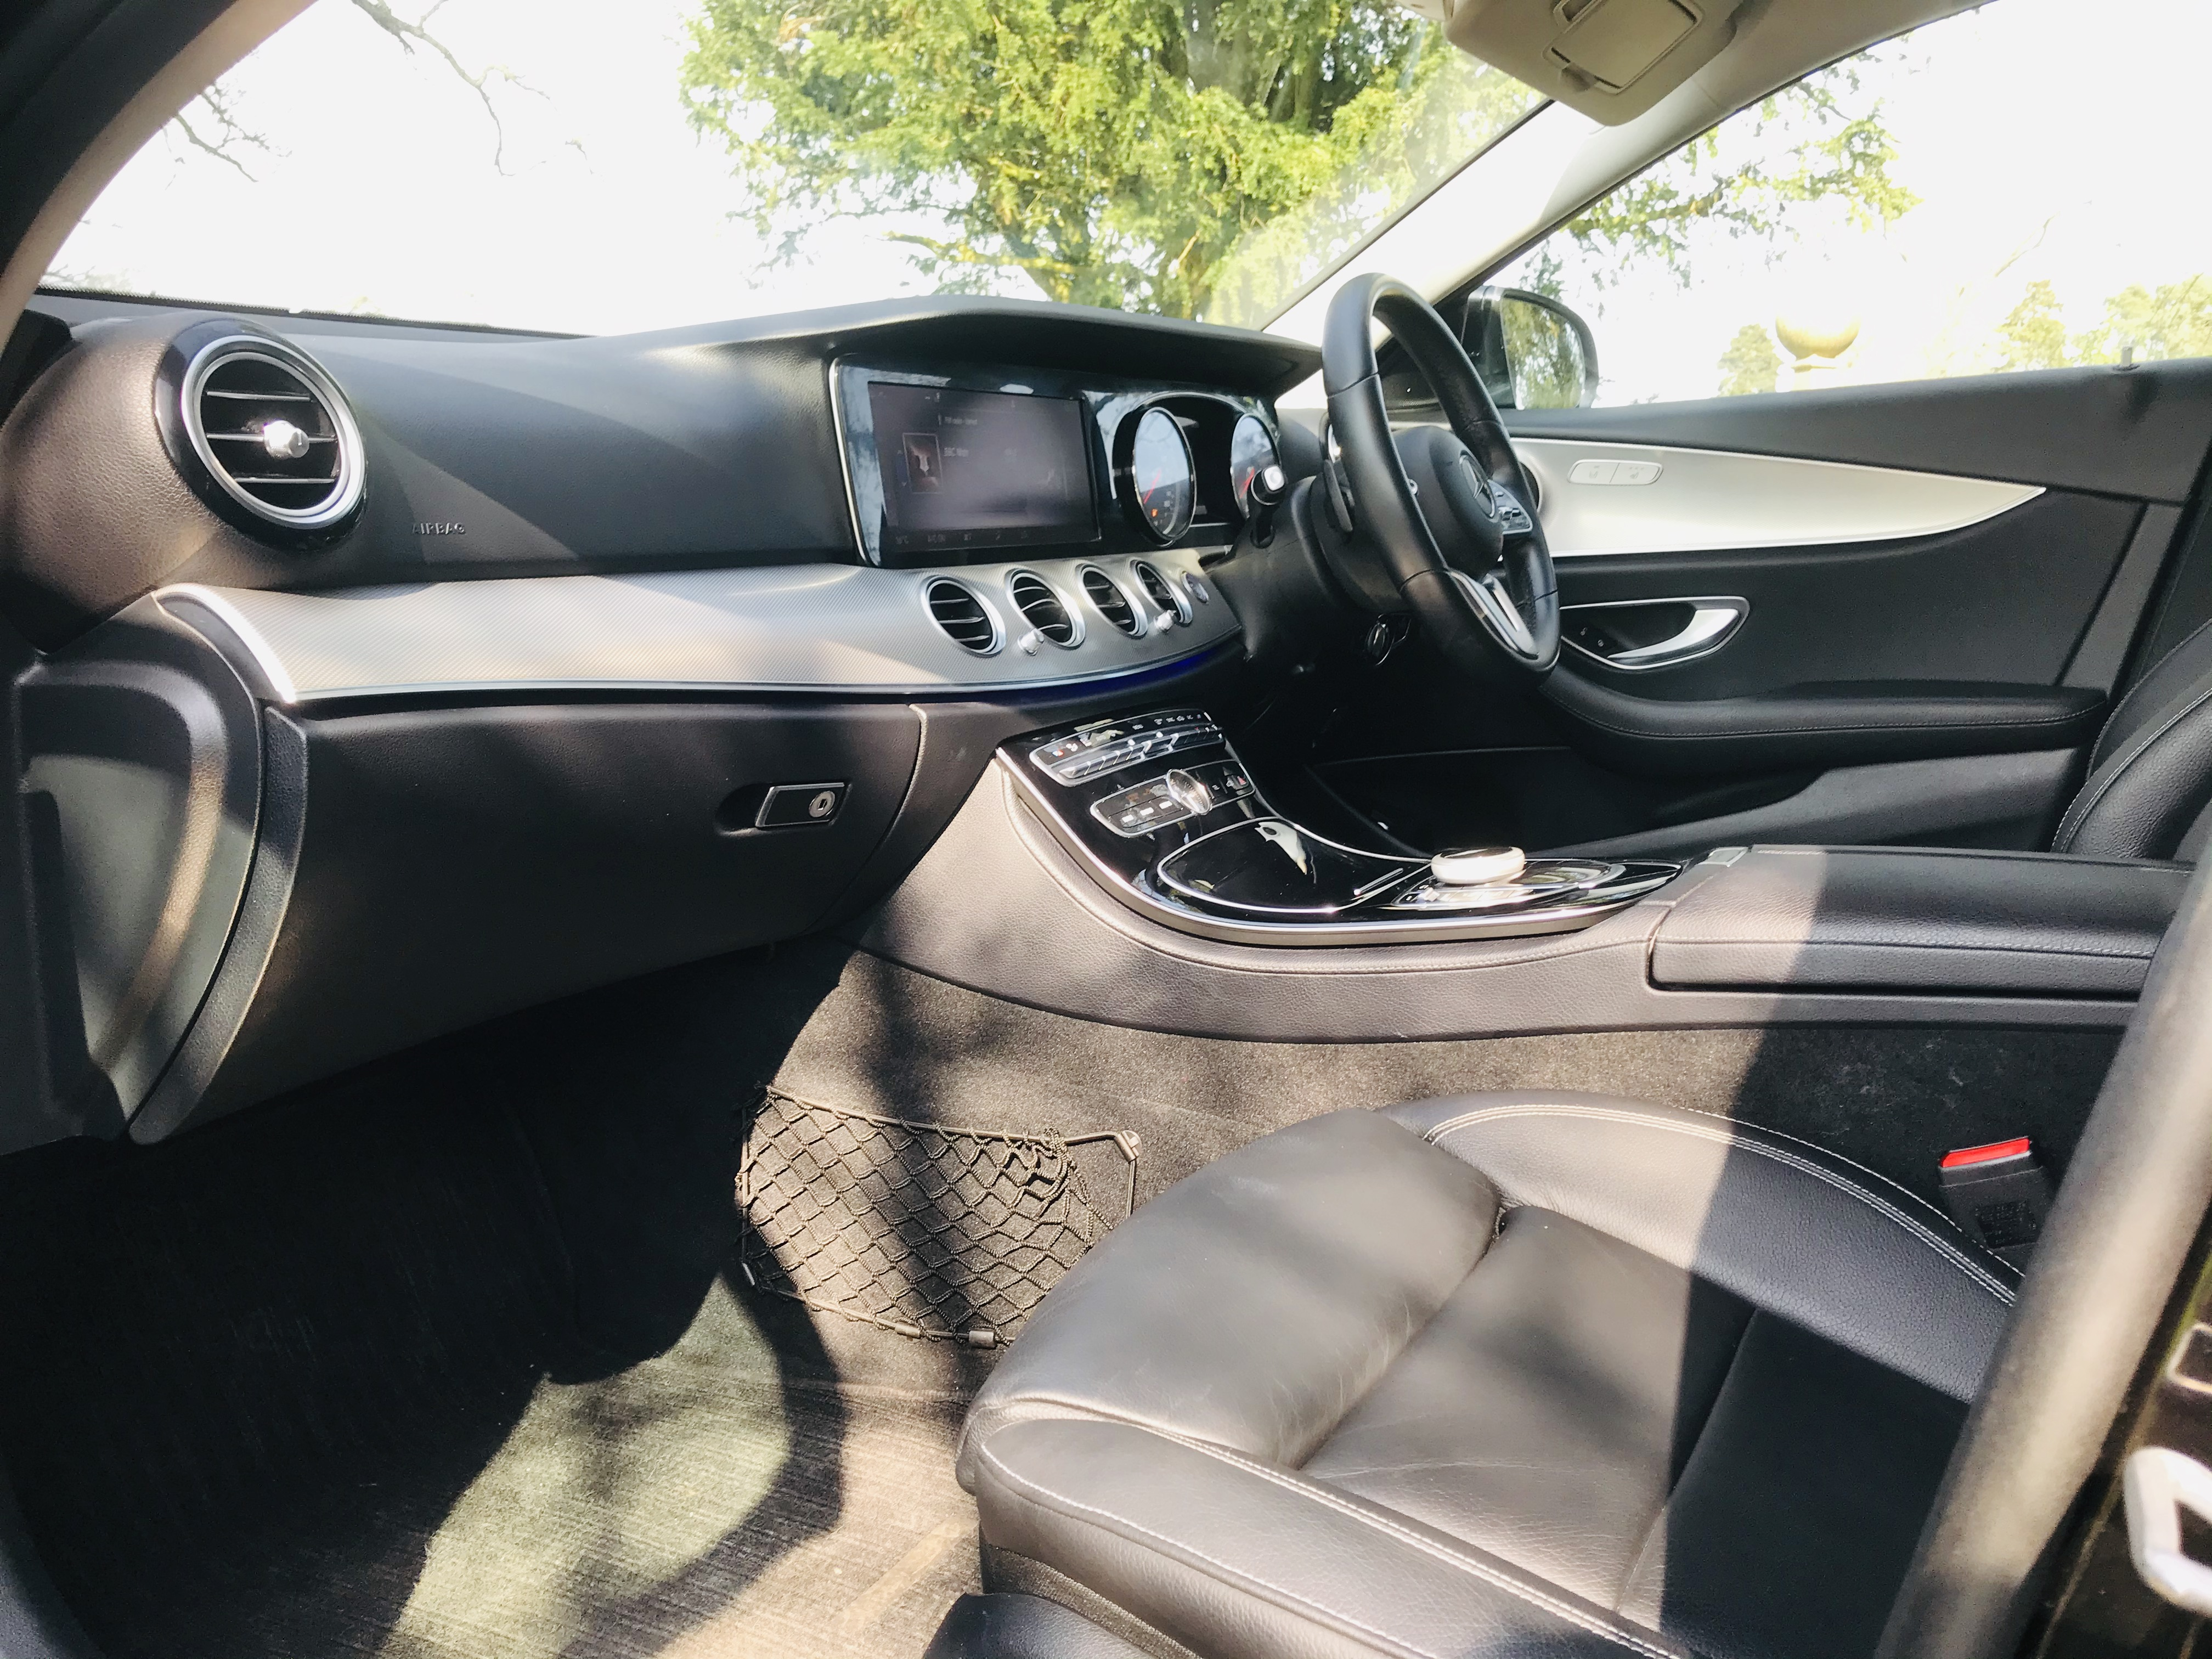 """On Sale MERCEDES E220d """"SPECIAL EQUIPMENT"""" 9G TRONIC (2019 MODEL) 1 OWNER - SAT NAV - LEATHER - WOW! - Image 13 of 26"""